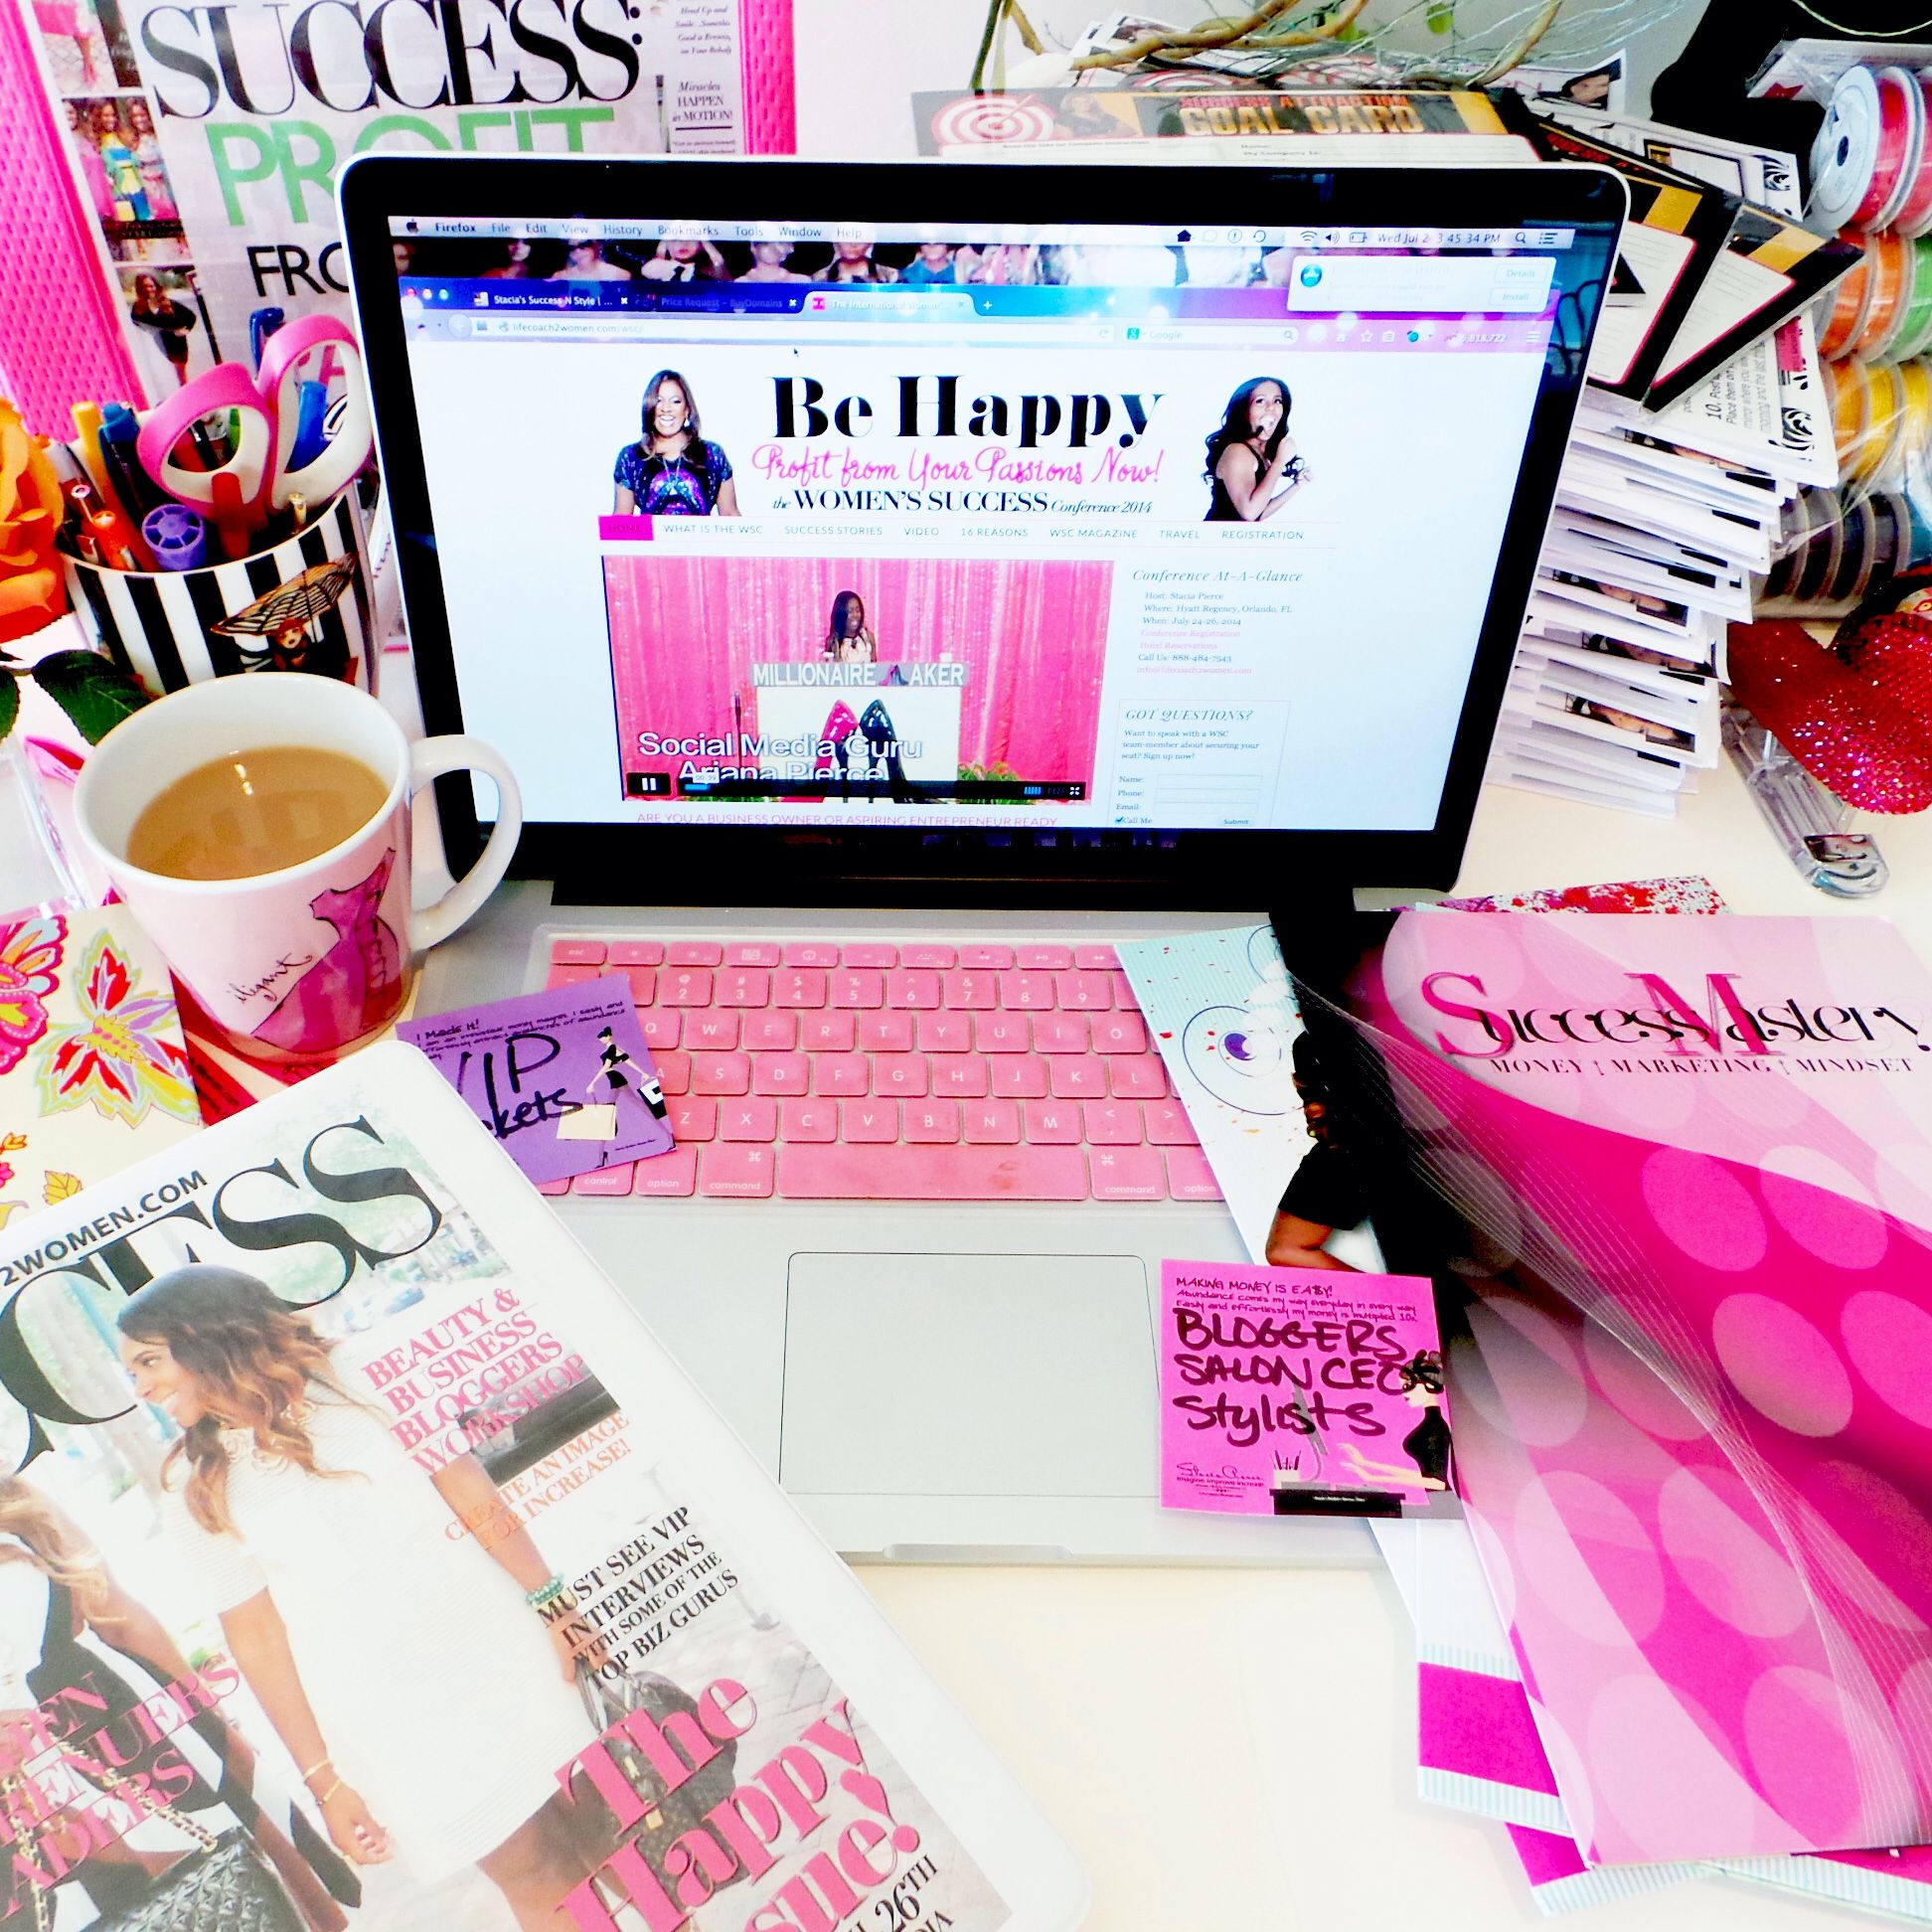 image media computer magazines office women table flat social desk bouquet photo with stock top clipboard s view lilies